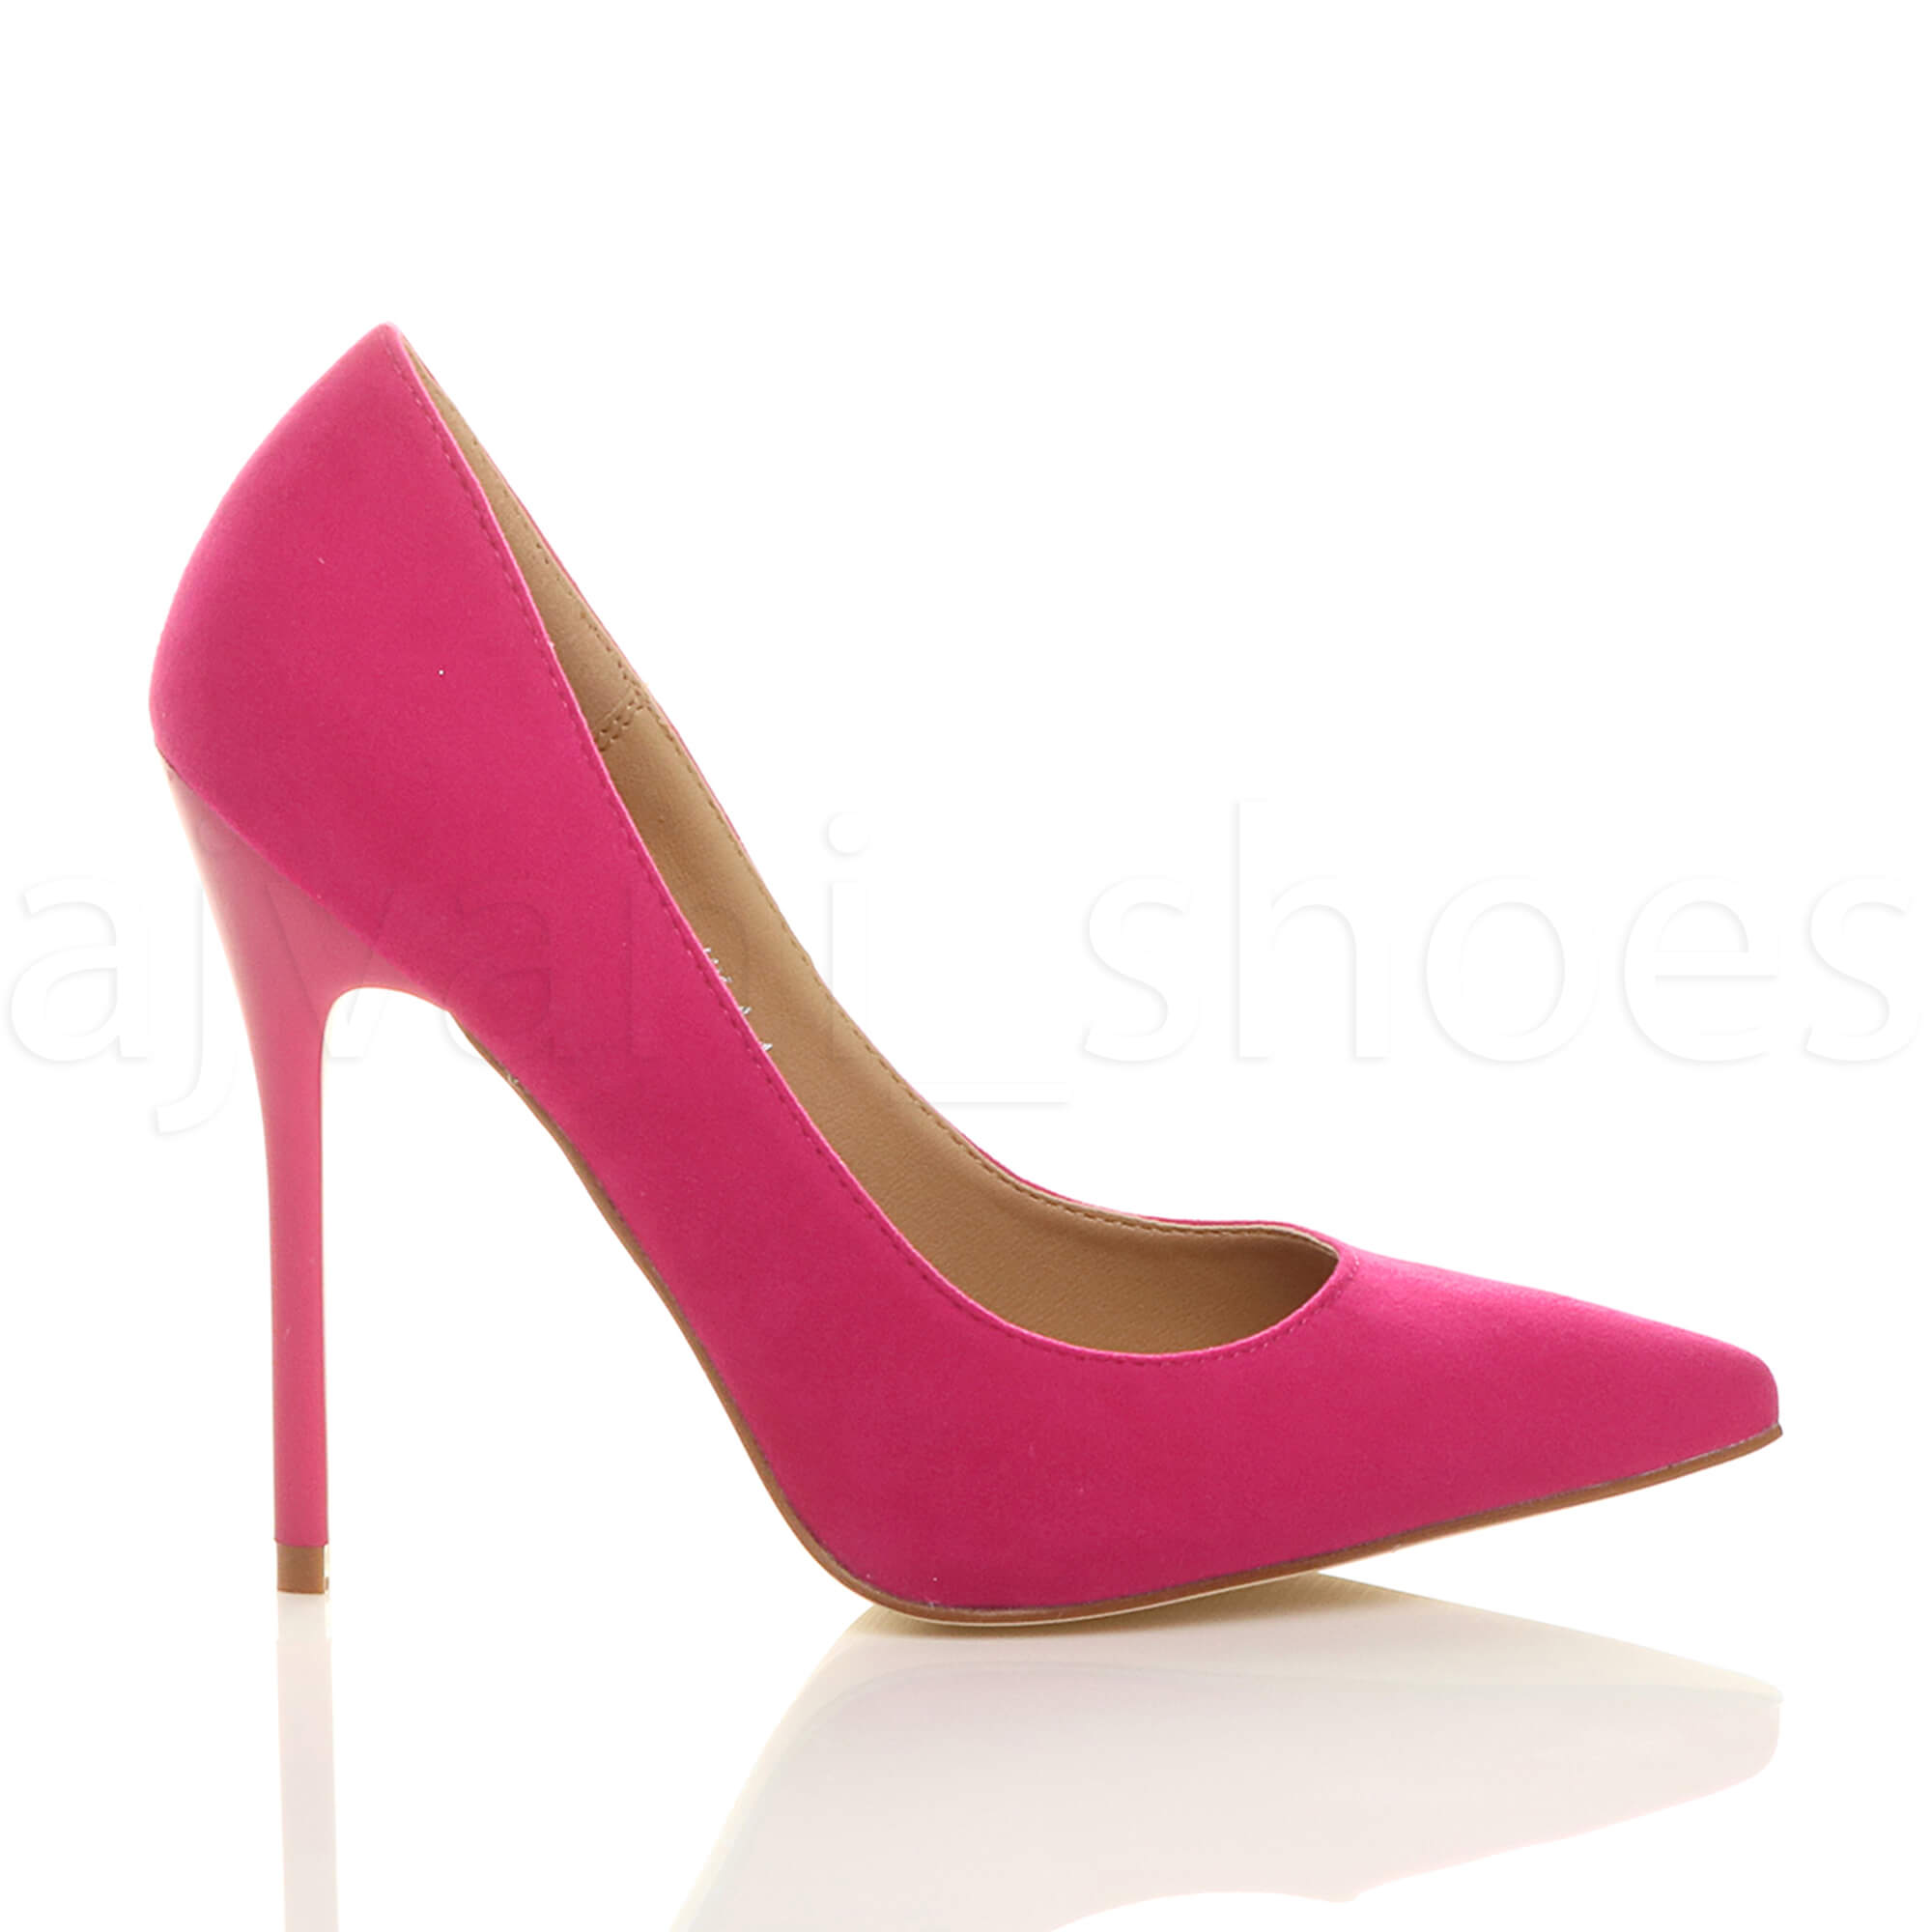 WOMENS-LADIES-HIGH-HEEL-POINTED-CONTRAST-COURT-SMART-PARTY-WORK-SHOES-PUMPS-SIZE thumbnail 81